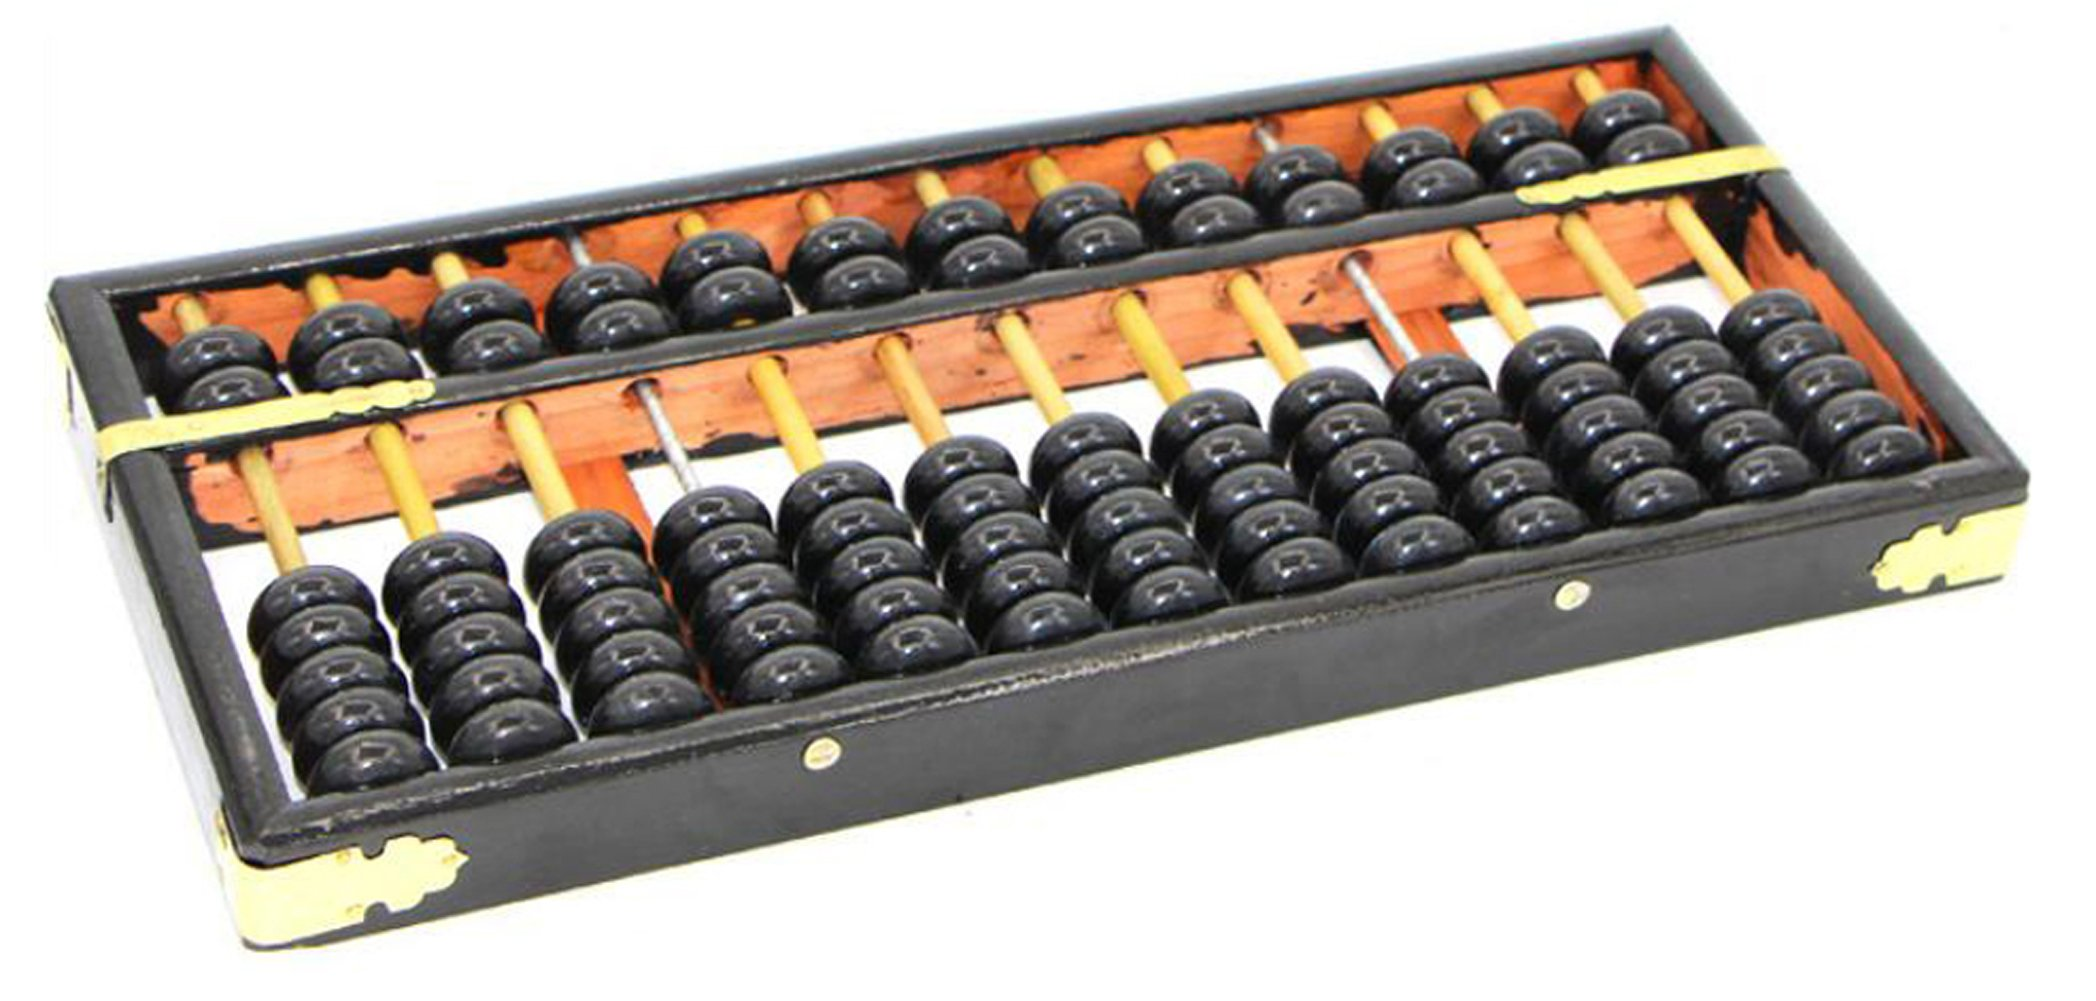 1Pcs Chinese Traditional Abacus-Wooden Math Calculate Tool with Alloy Corners Suitable For Calculater Pupil Arithmetic and Professional Accountants(Black)